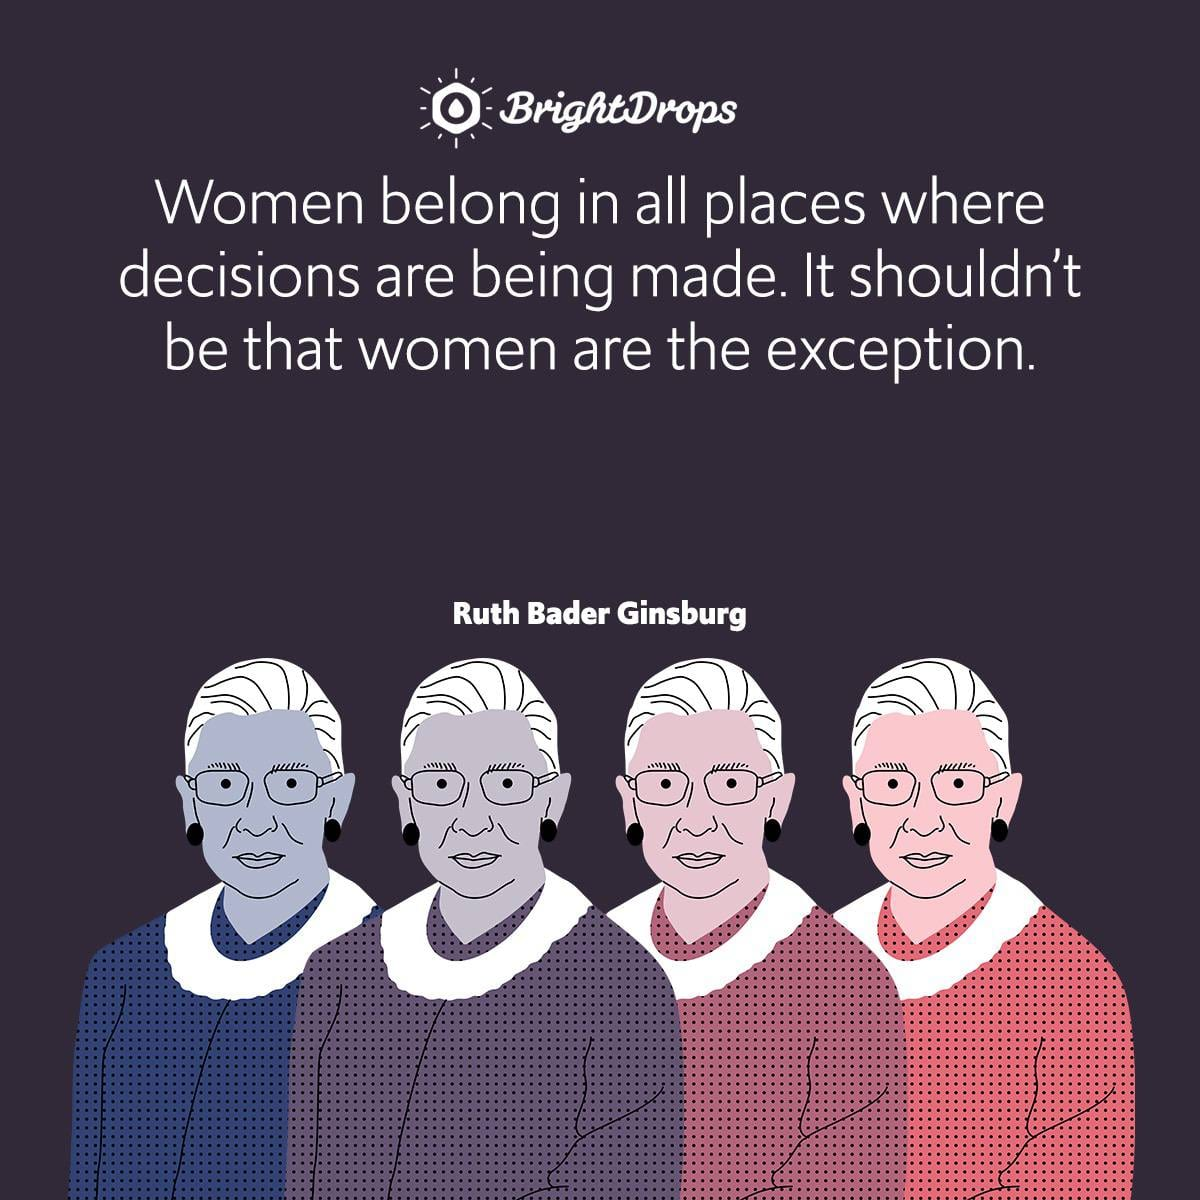 Women belong in all places where decisions are being made. It shouldn't be that women are the exception.